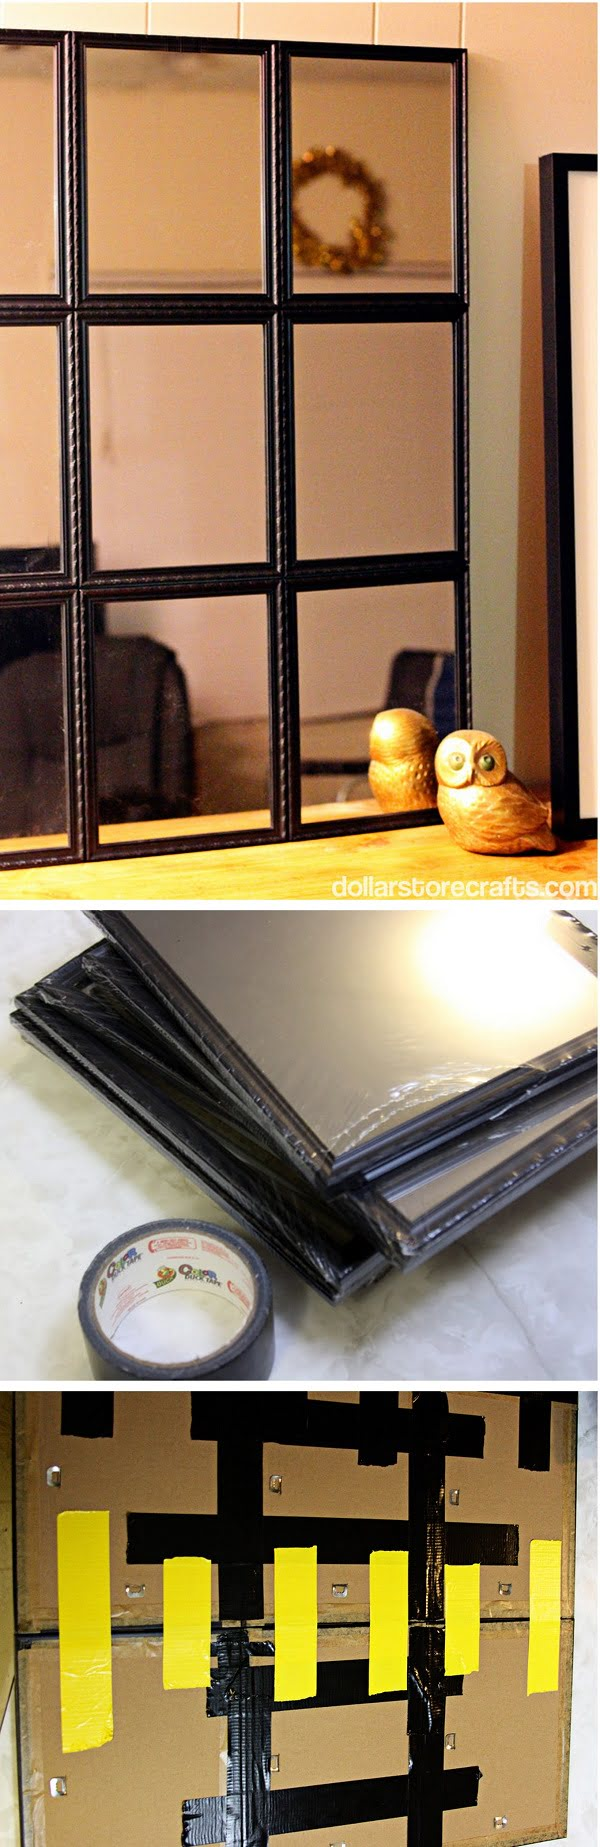 50 Fab DIY Mirror Frames You Can Easily Make Yourself - Check out how to build a DIY mirror from Dollar Store finds